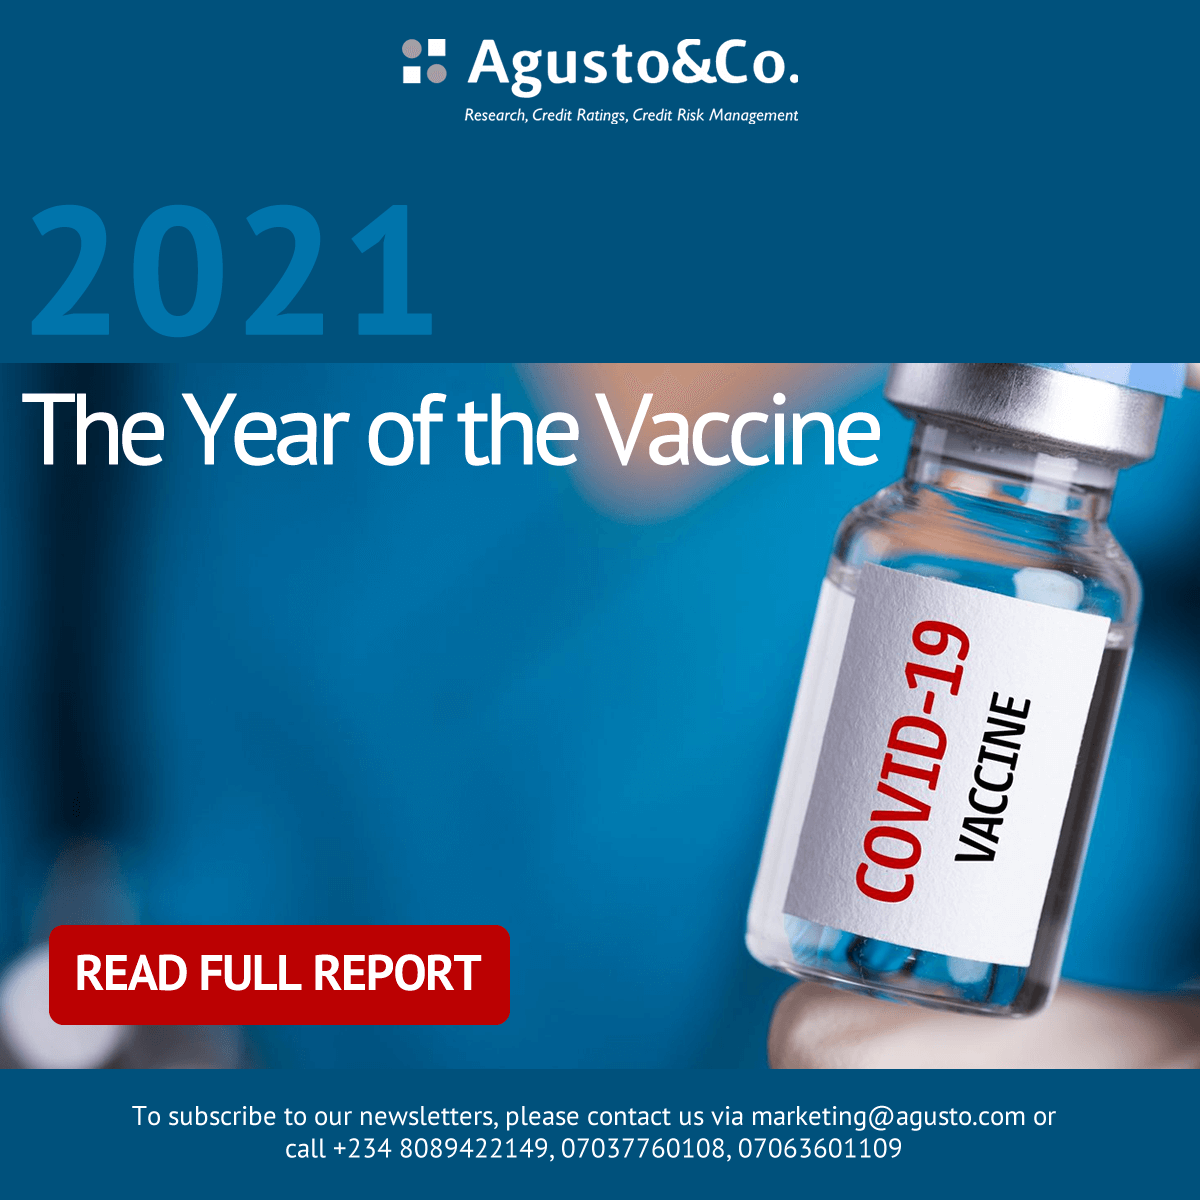 2021: The Year of the Vaccine